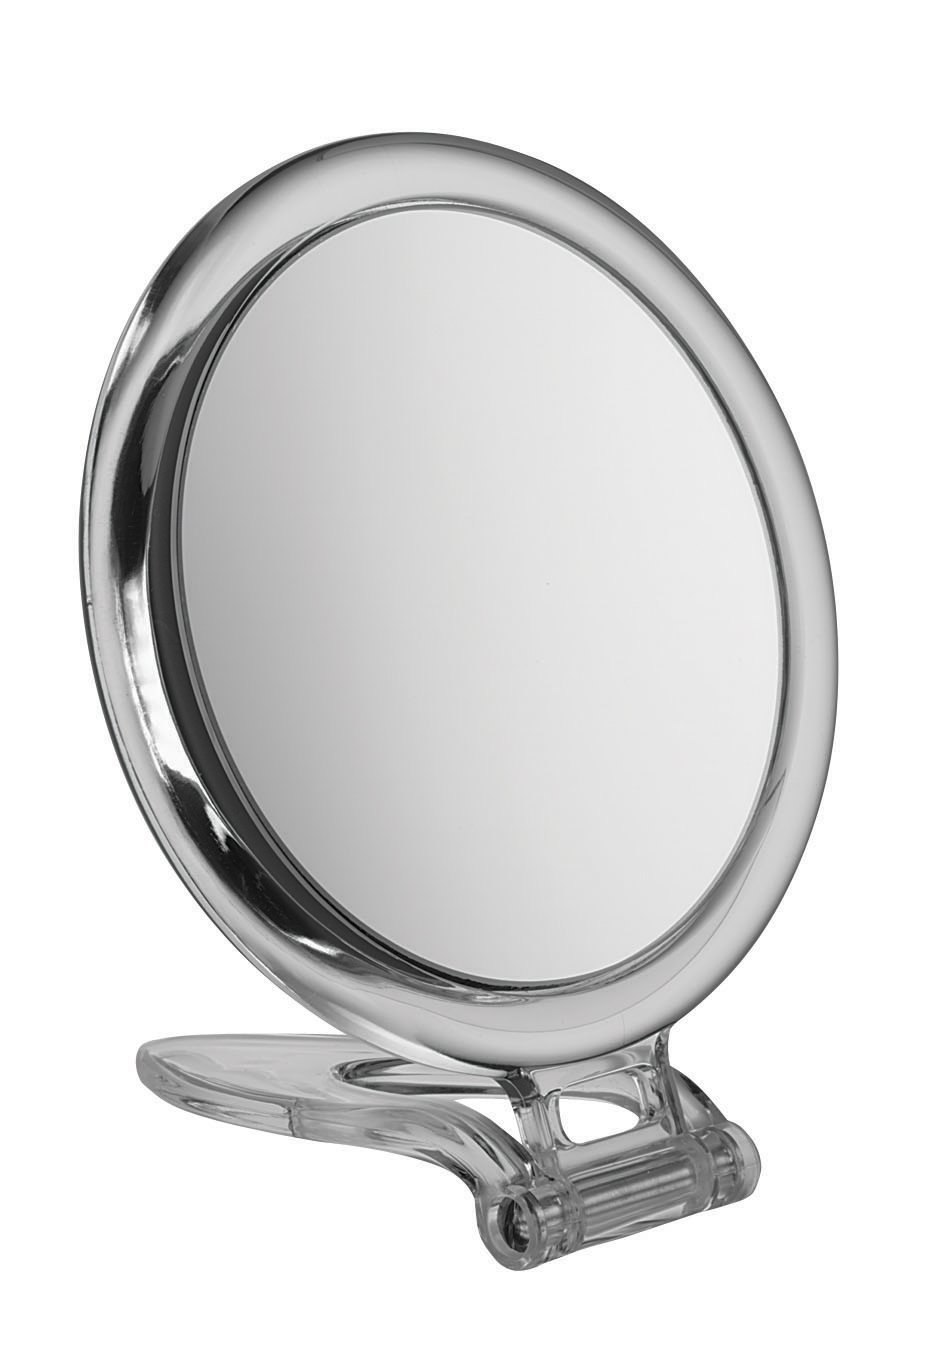 mirror. Circle Perspex Travel Mirror X 10 Magnification - 15cm Diameter Perfect For Travelling: Amazon.co.uk: Kitchen \u0026 Home H